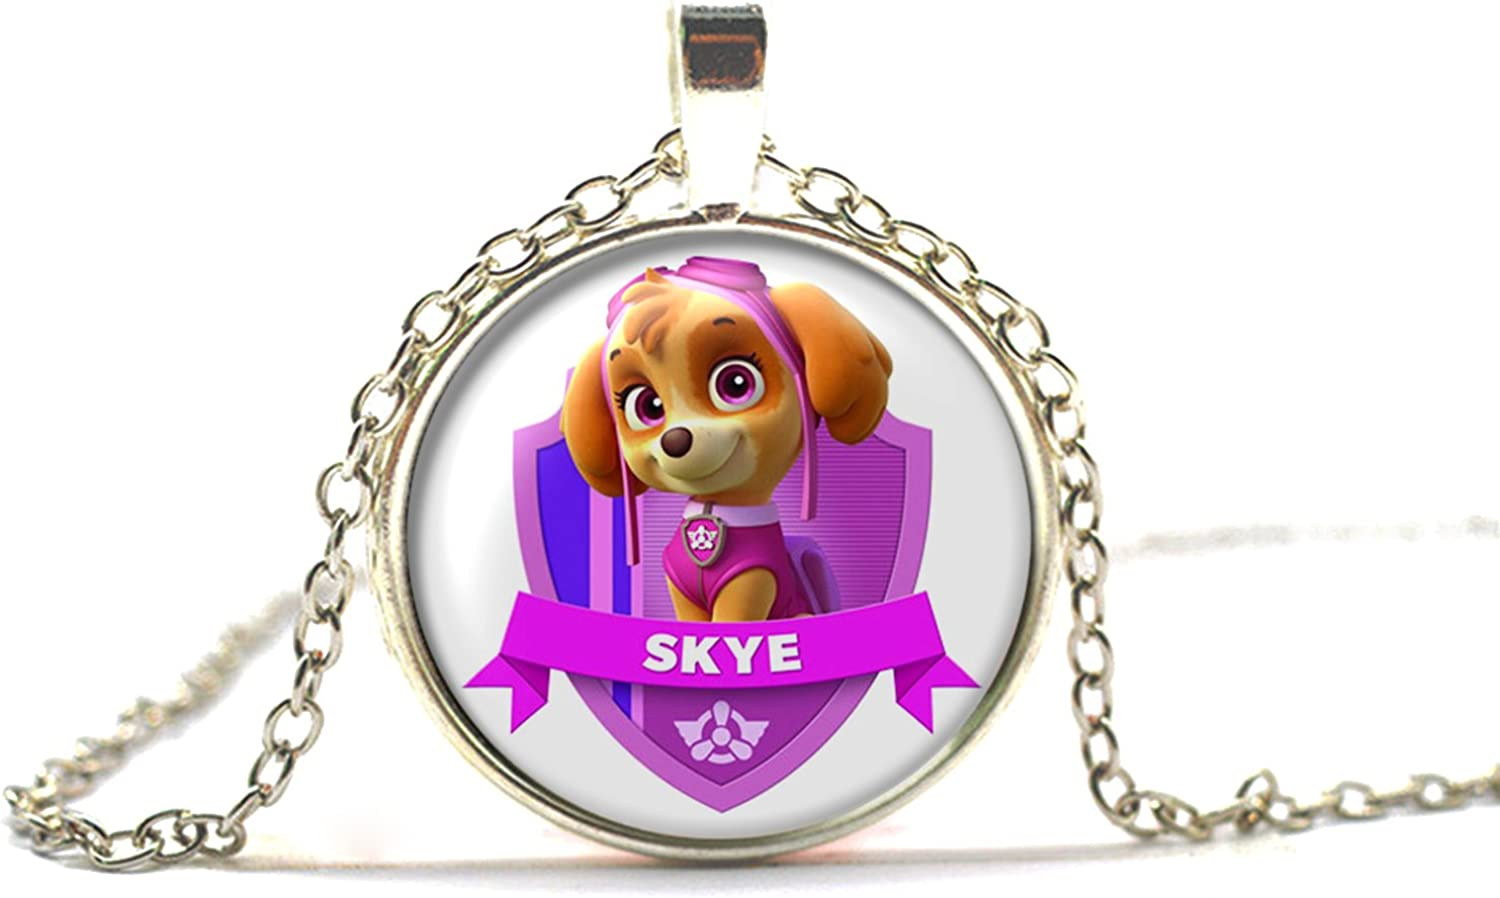 PAW PATROL SKYE  PENDANT SILVER PLATED CHAIN 16 INCH GIFT BOX PARTY BIRTHDAY